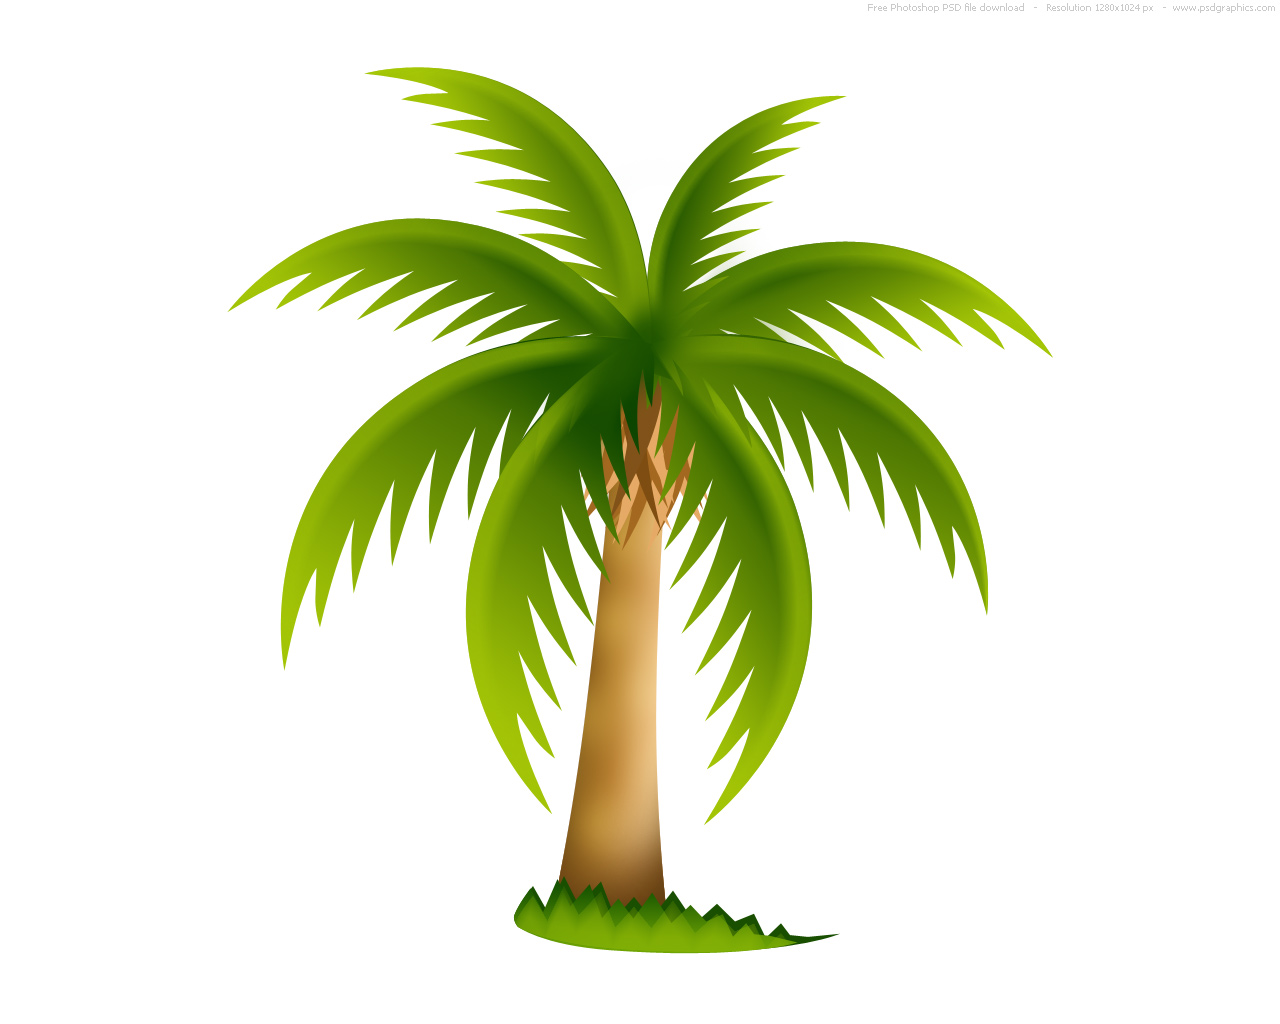 Palm tree, PSD web icon  PSDGraphics